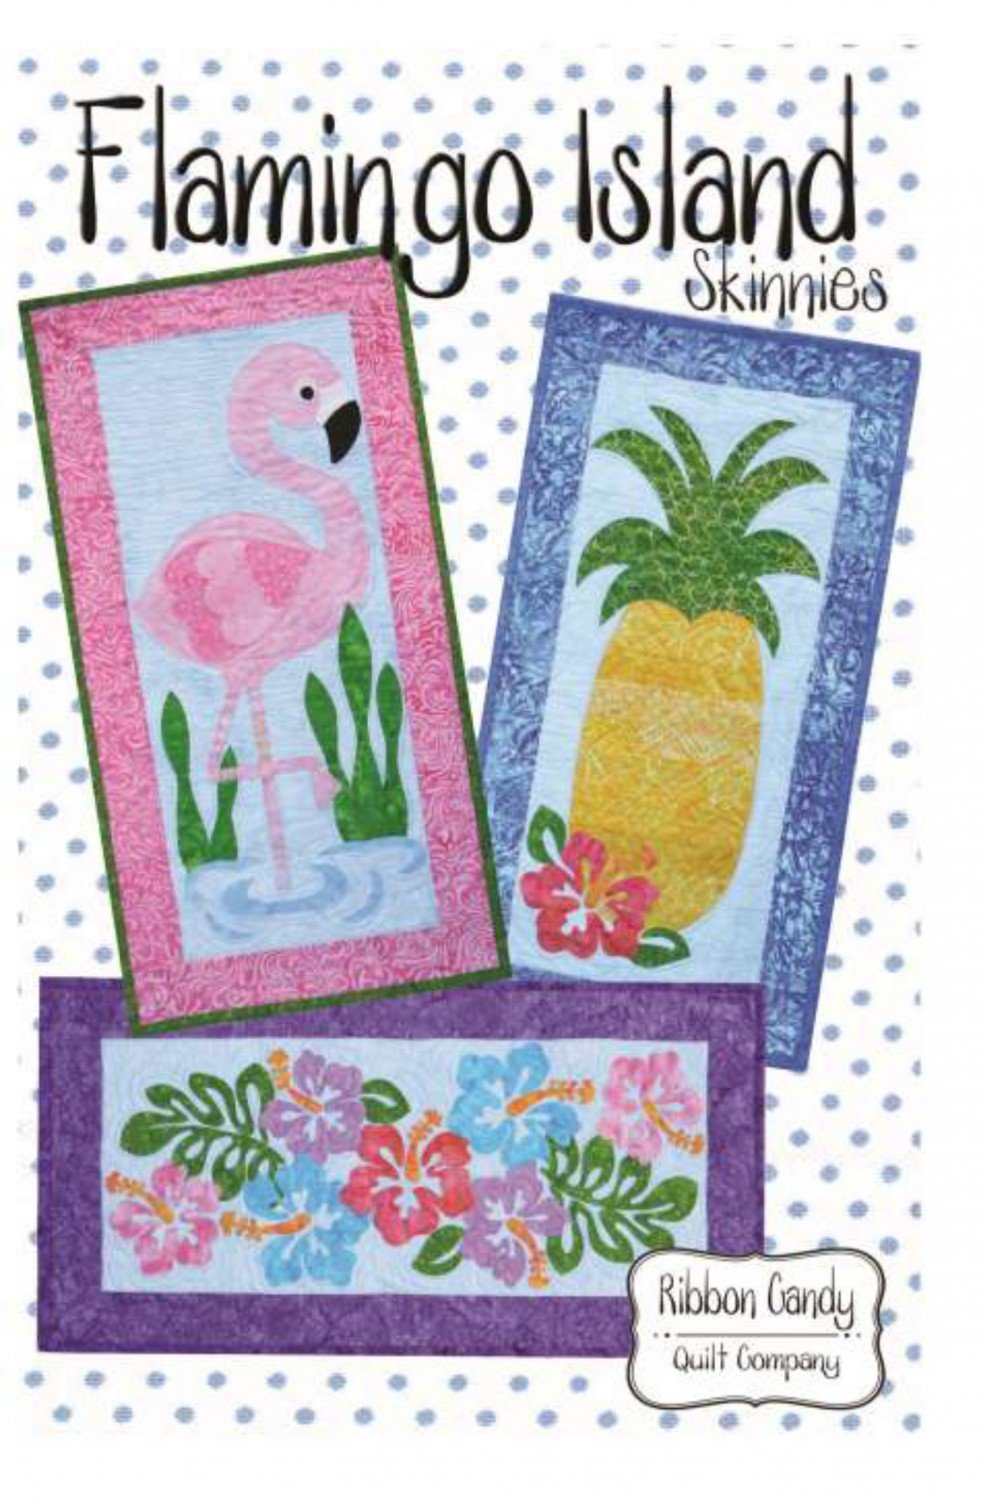 Flamingo Island Skinnies